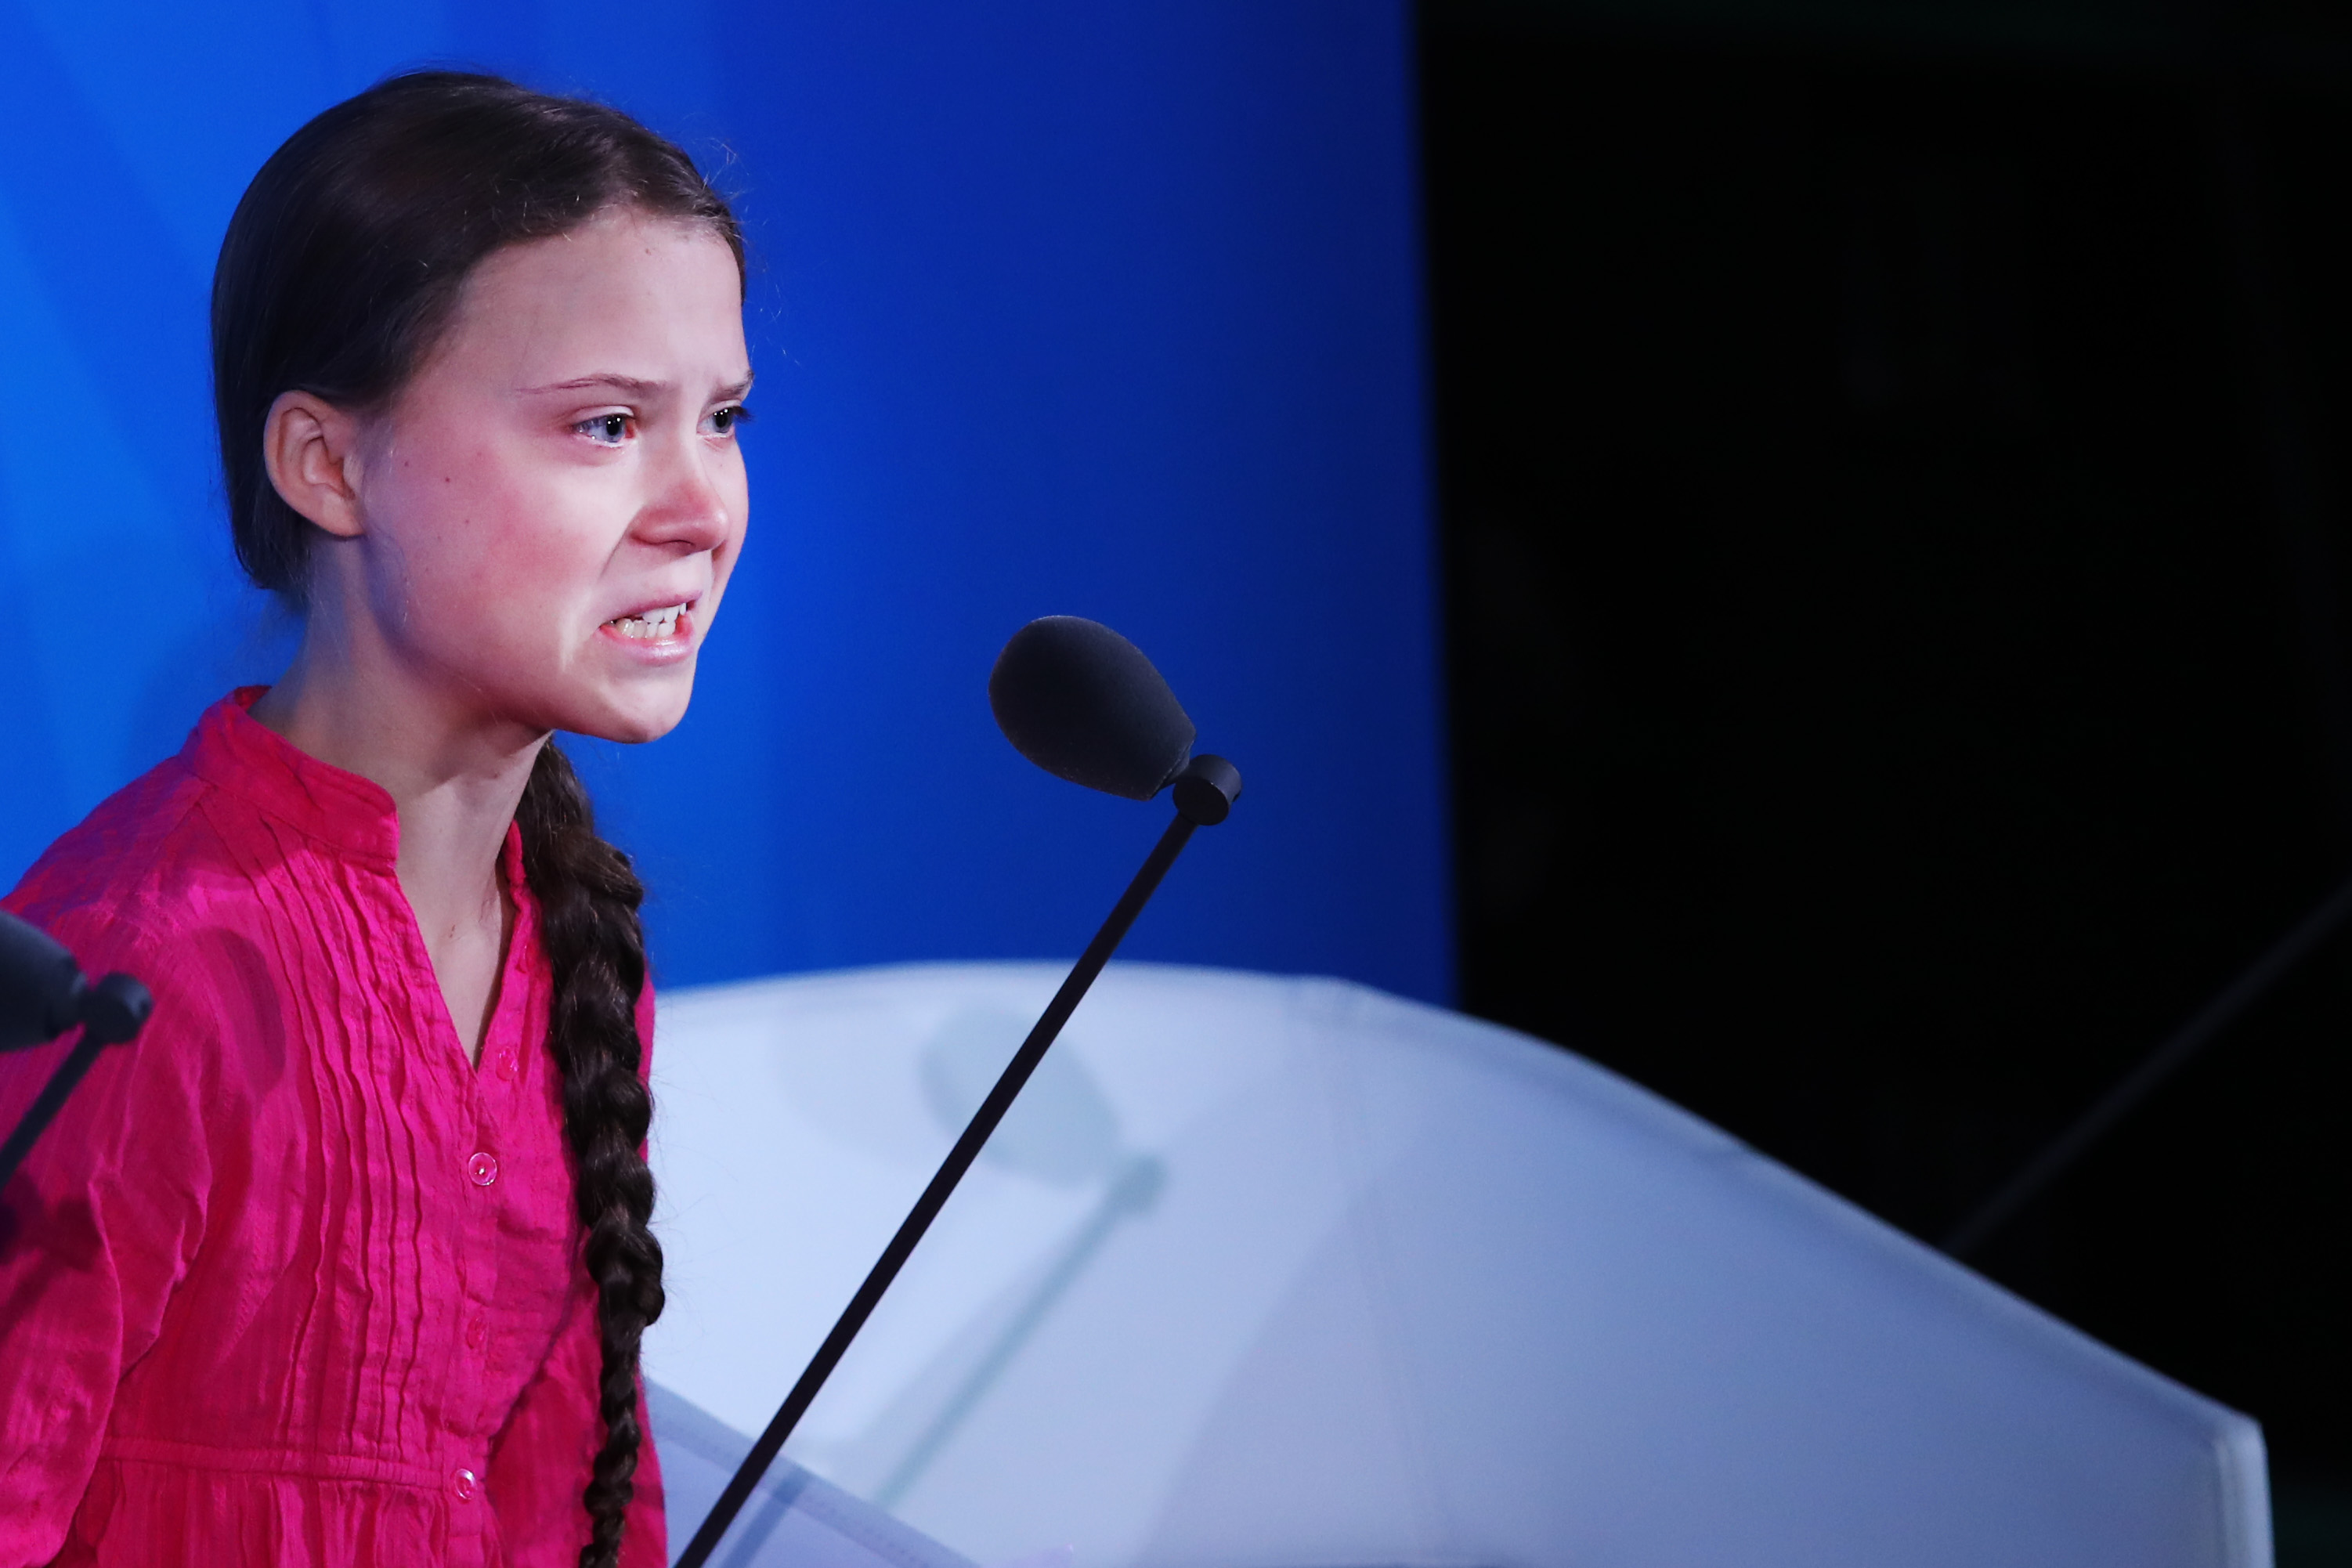 Greta Thunberg A Young Activists Moment Praised And